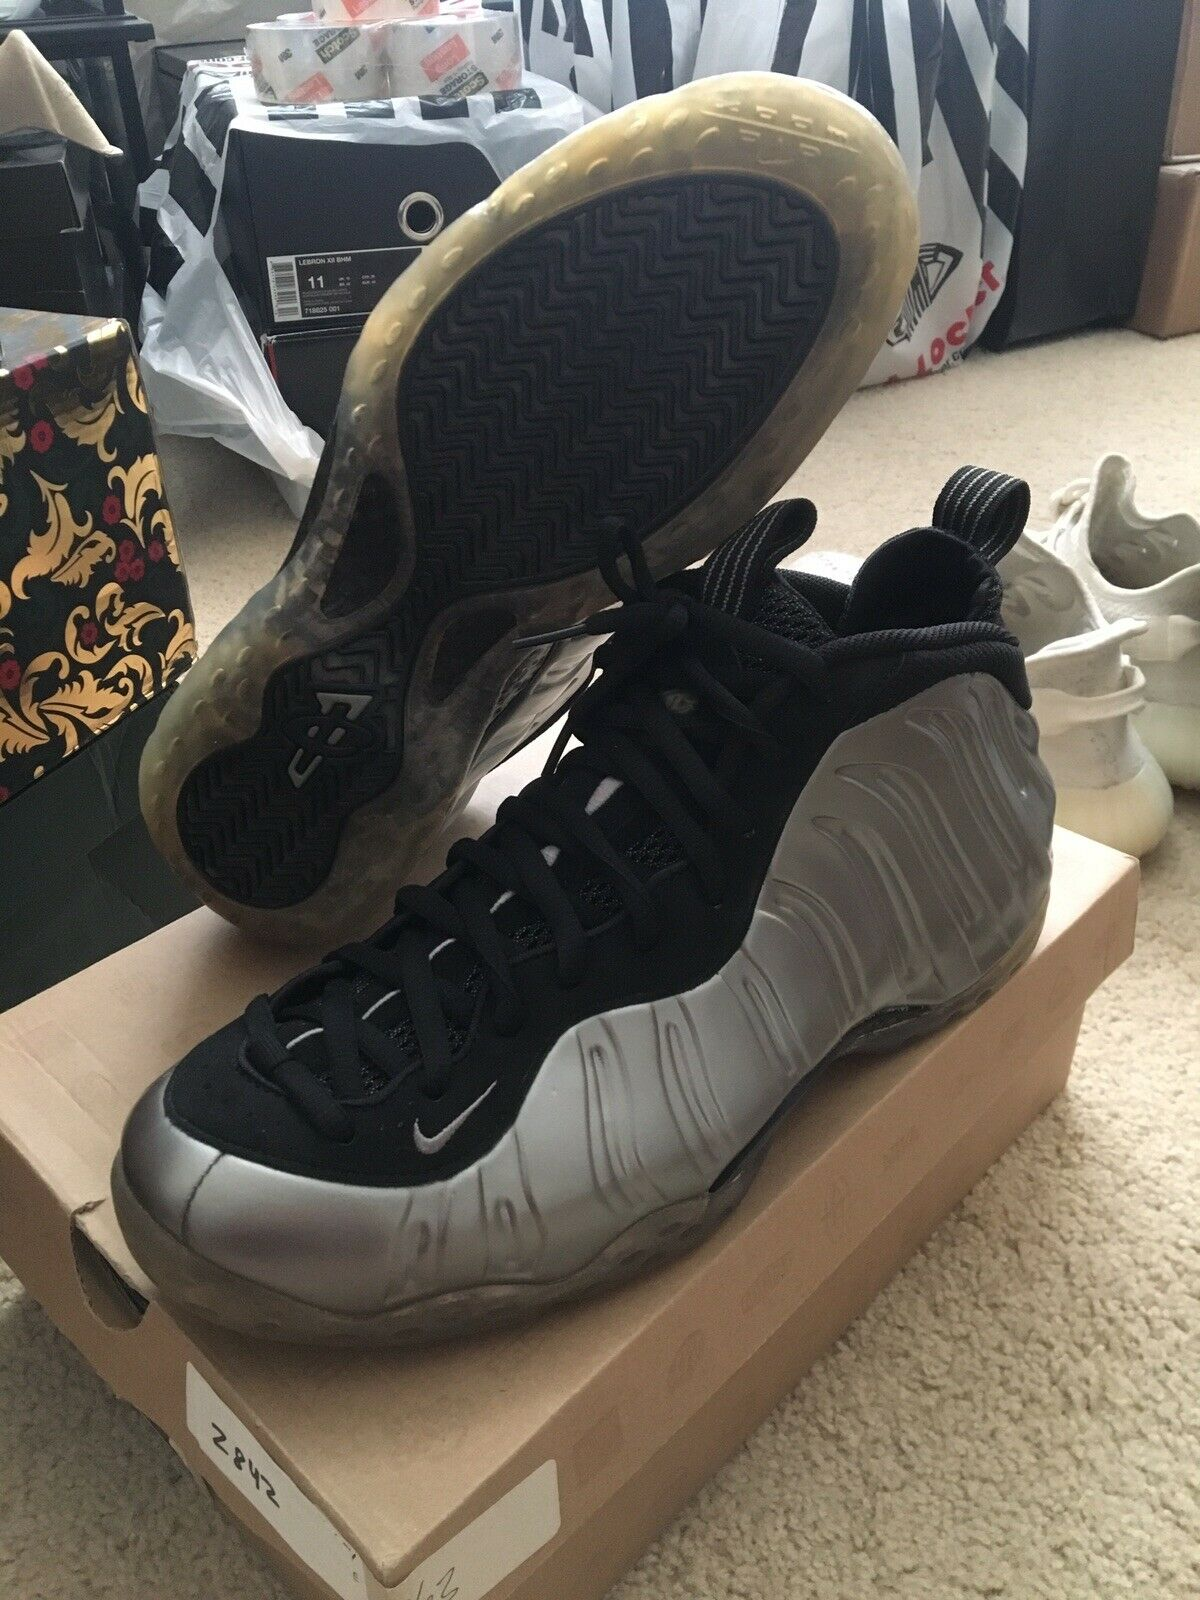 2011 Nike Air Foamposite One Metallic Pewter Silver Authentic Receipt VNDS US 11